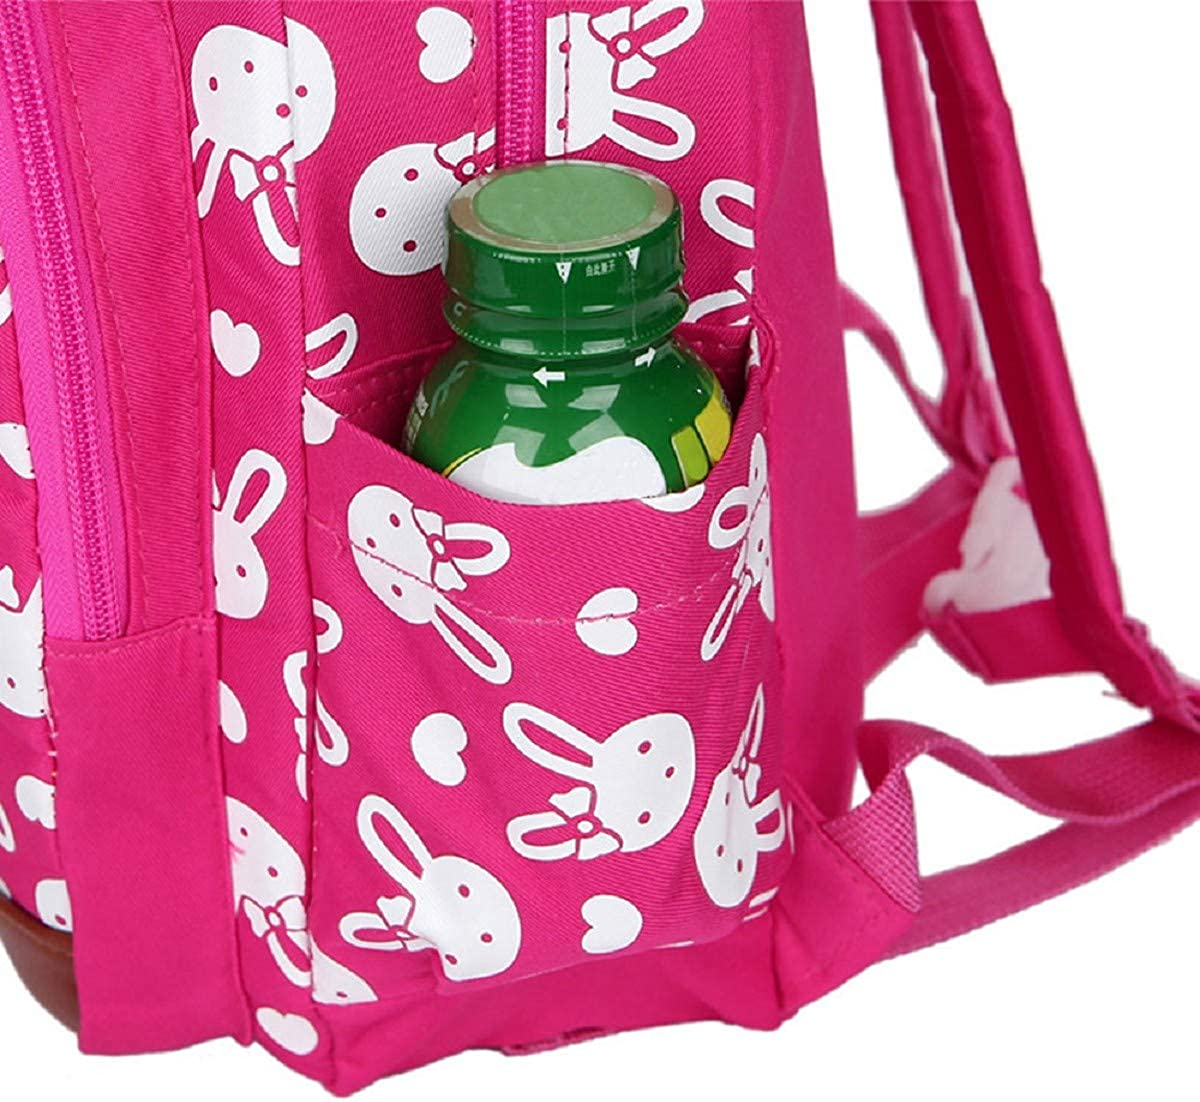 OTINICE Fashion Toddler Kids Travel Backpack Boys Girls Portable School Bag with Side Pockets